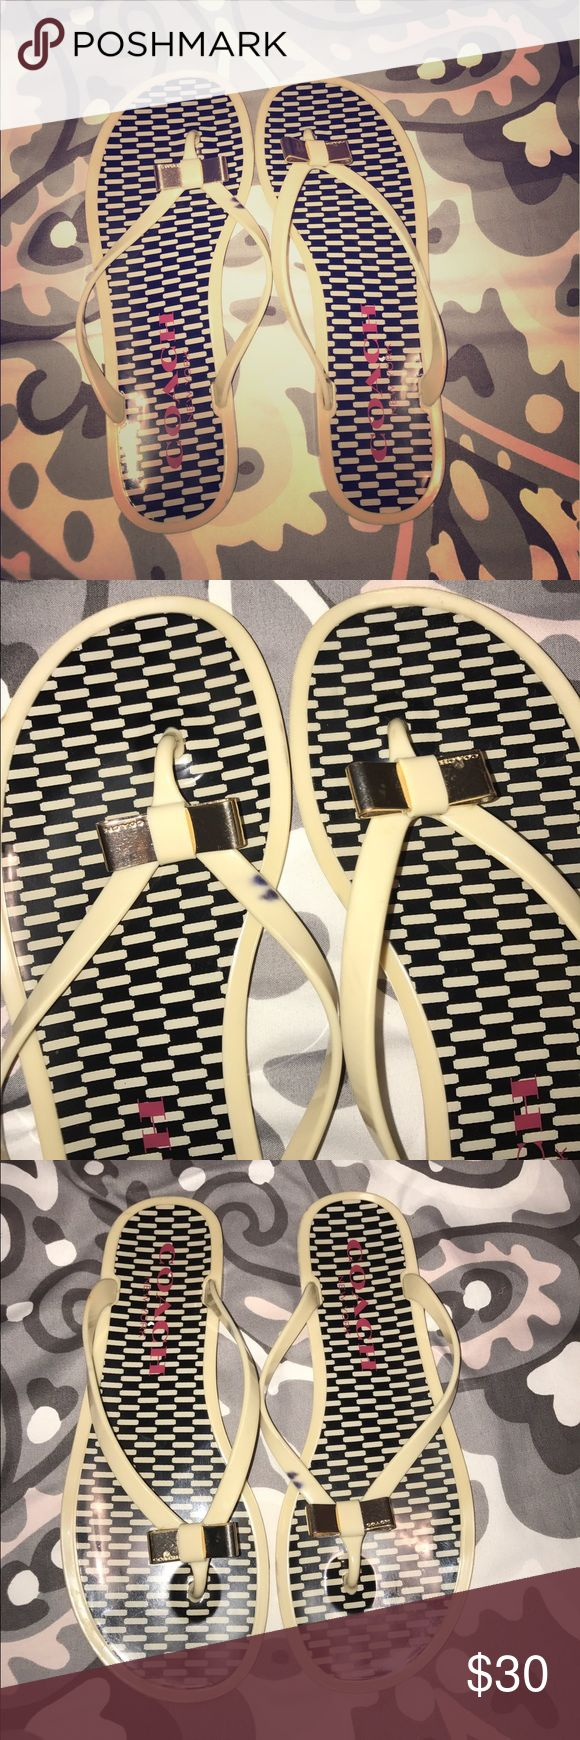 Authentic coach flip flops Used but great condition (one spot on strap -see pic) women's sz. 9 authentic coach cream with gold bow flip flops. Contact me first to make sure still available. Coach Shoes Sandals